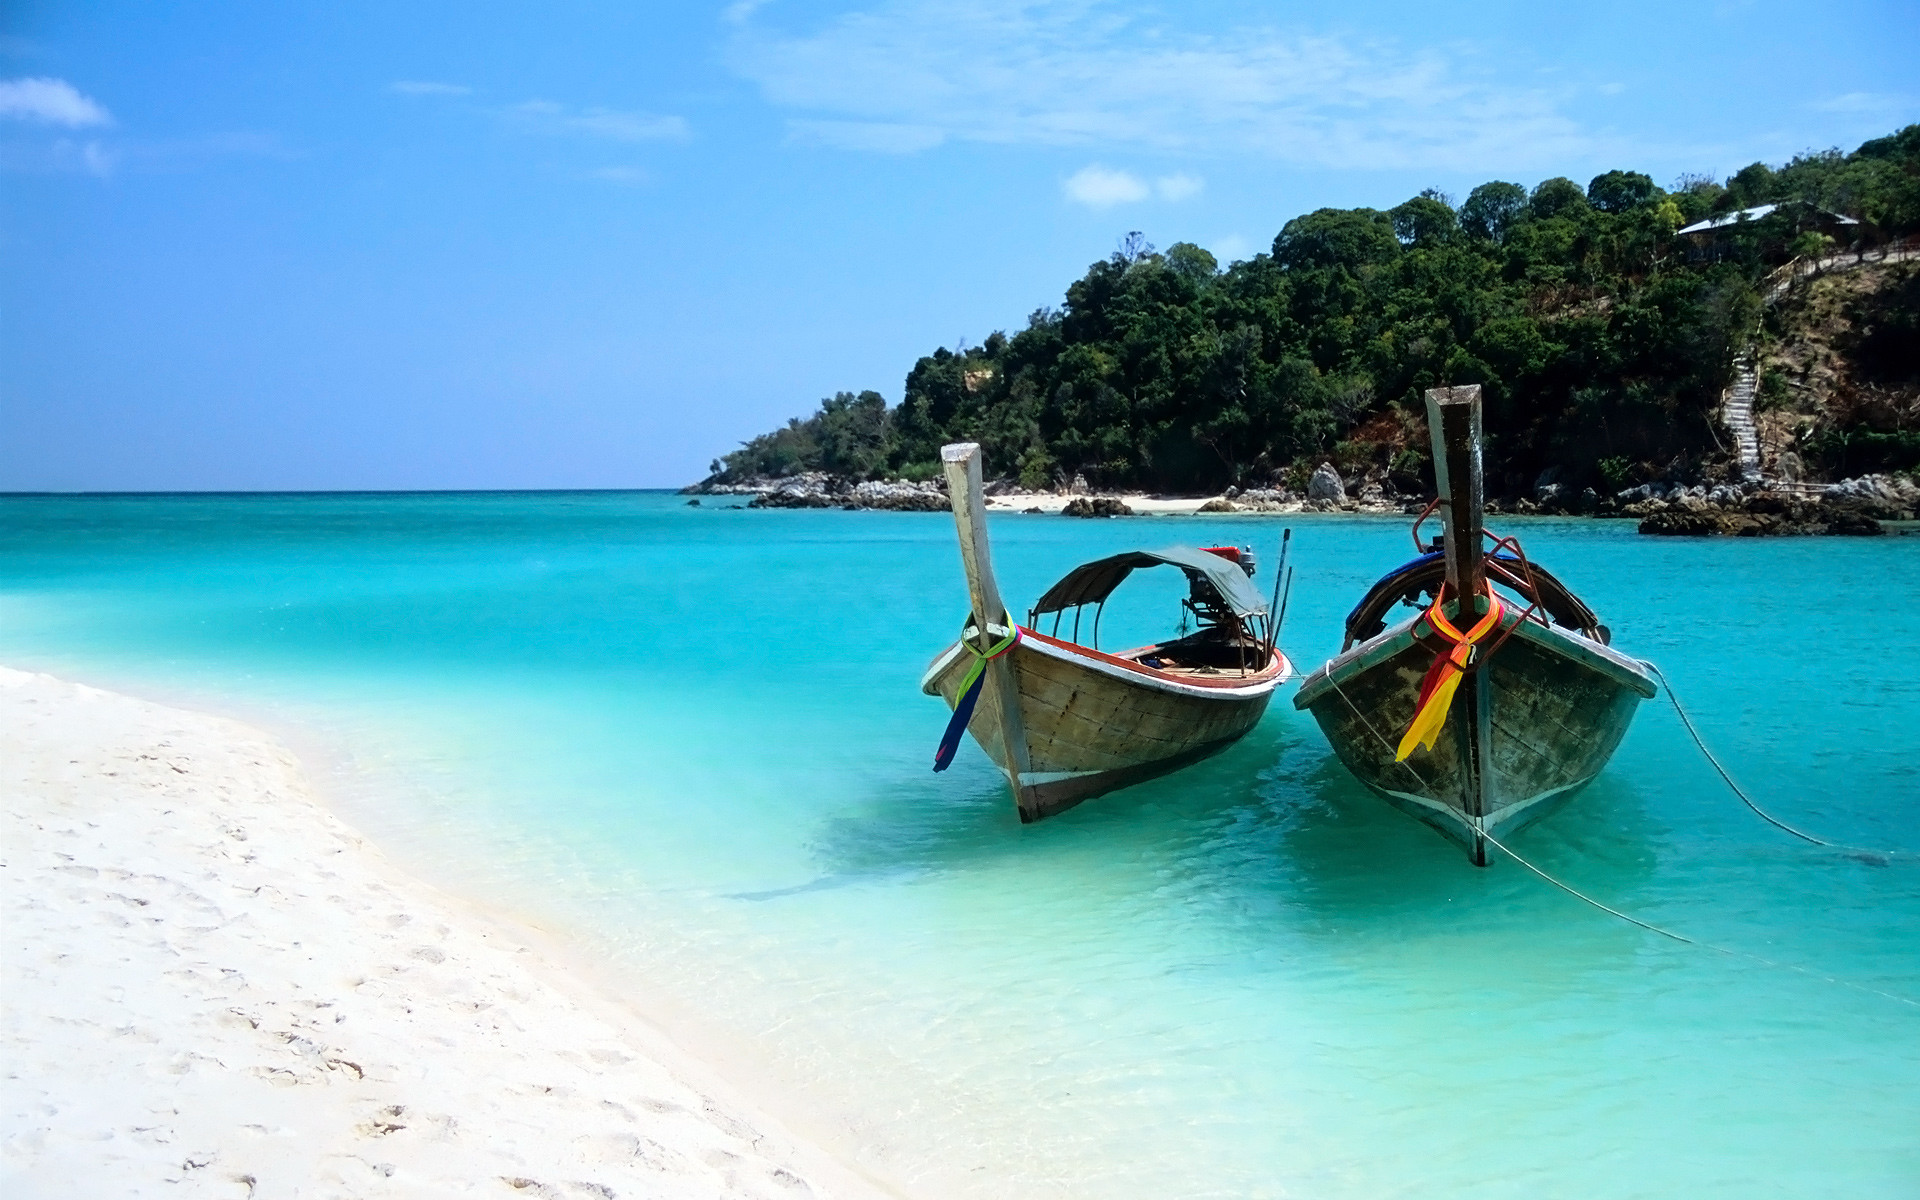 Thailand Beach Wallpaper 1080p As Wallpaper HD